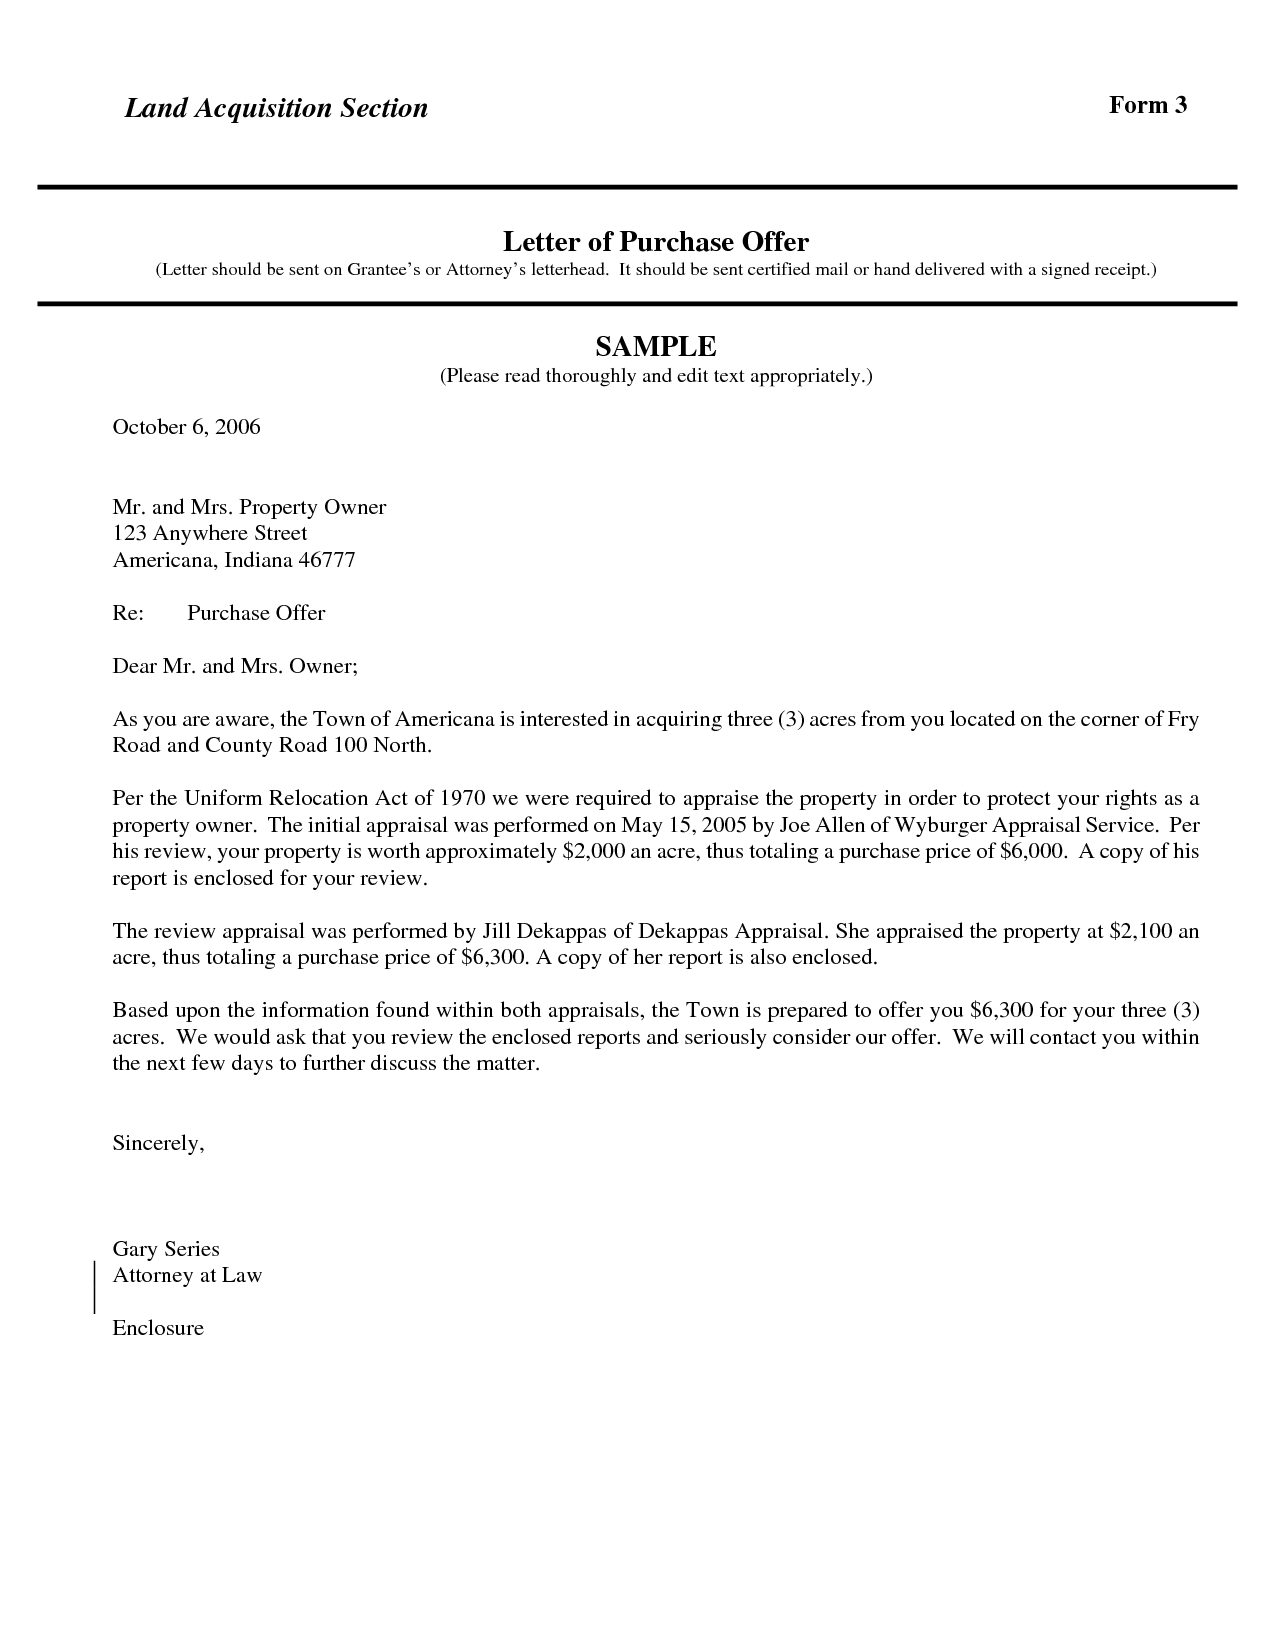 Letter Of Intent to Purchase Land Template - Best S Template Proposal Property Buying Letter Sampletent